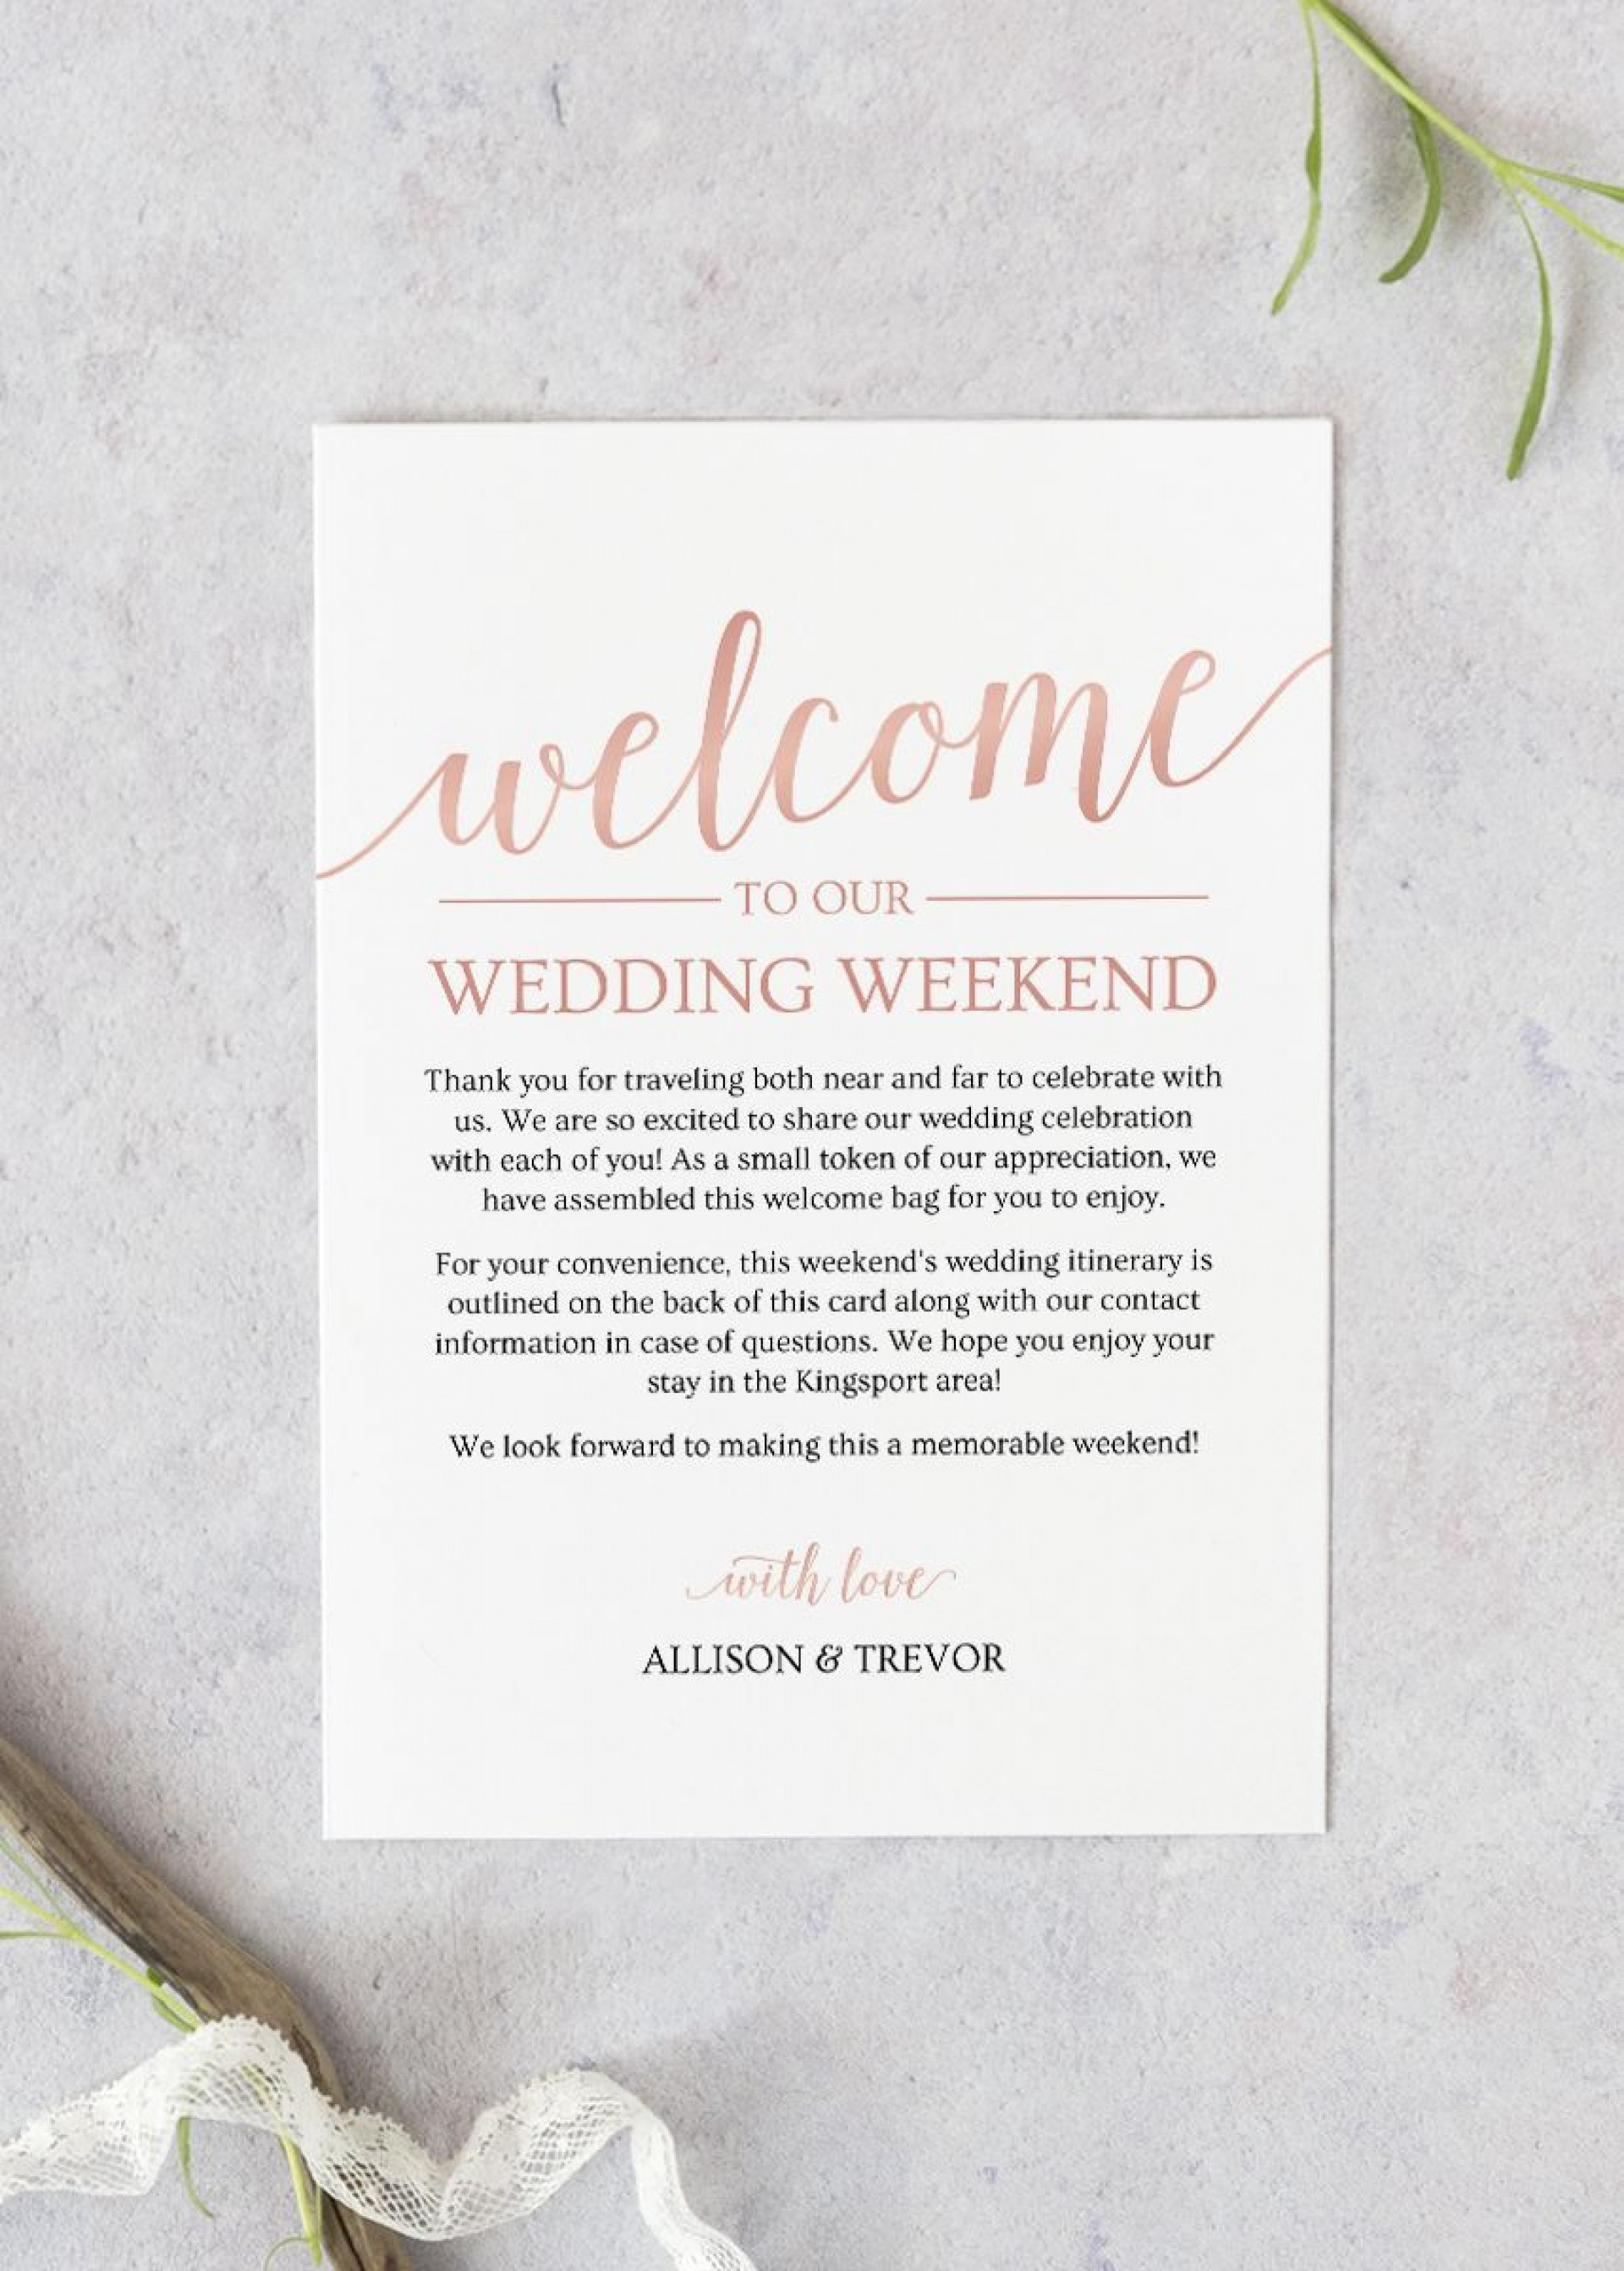 004 Unique Wedding Welcome Letter Template Free Photo  Bag1920